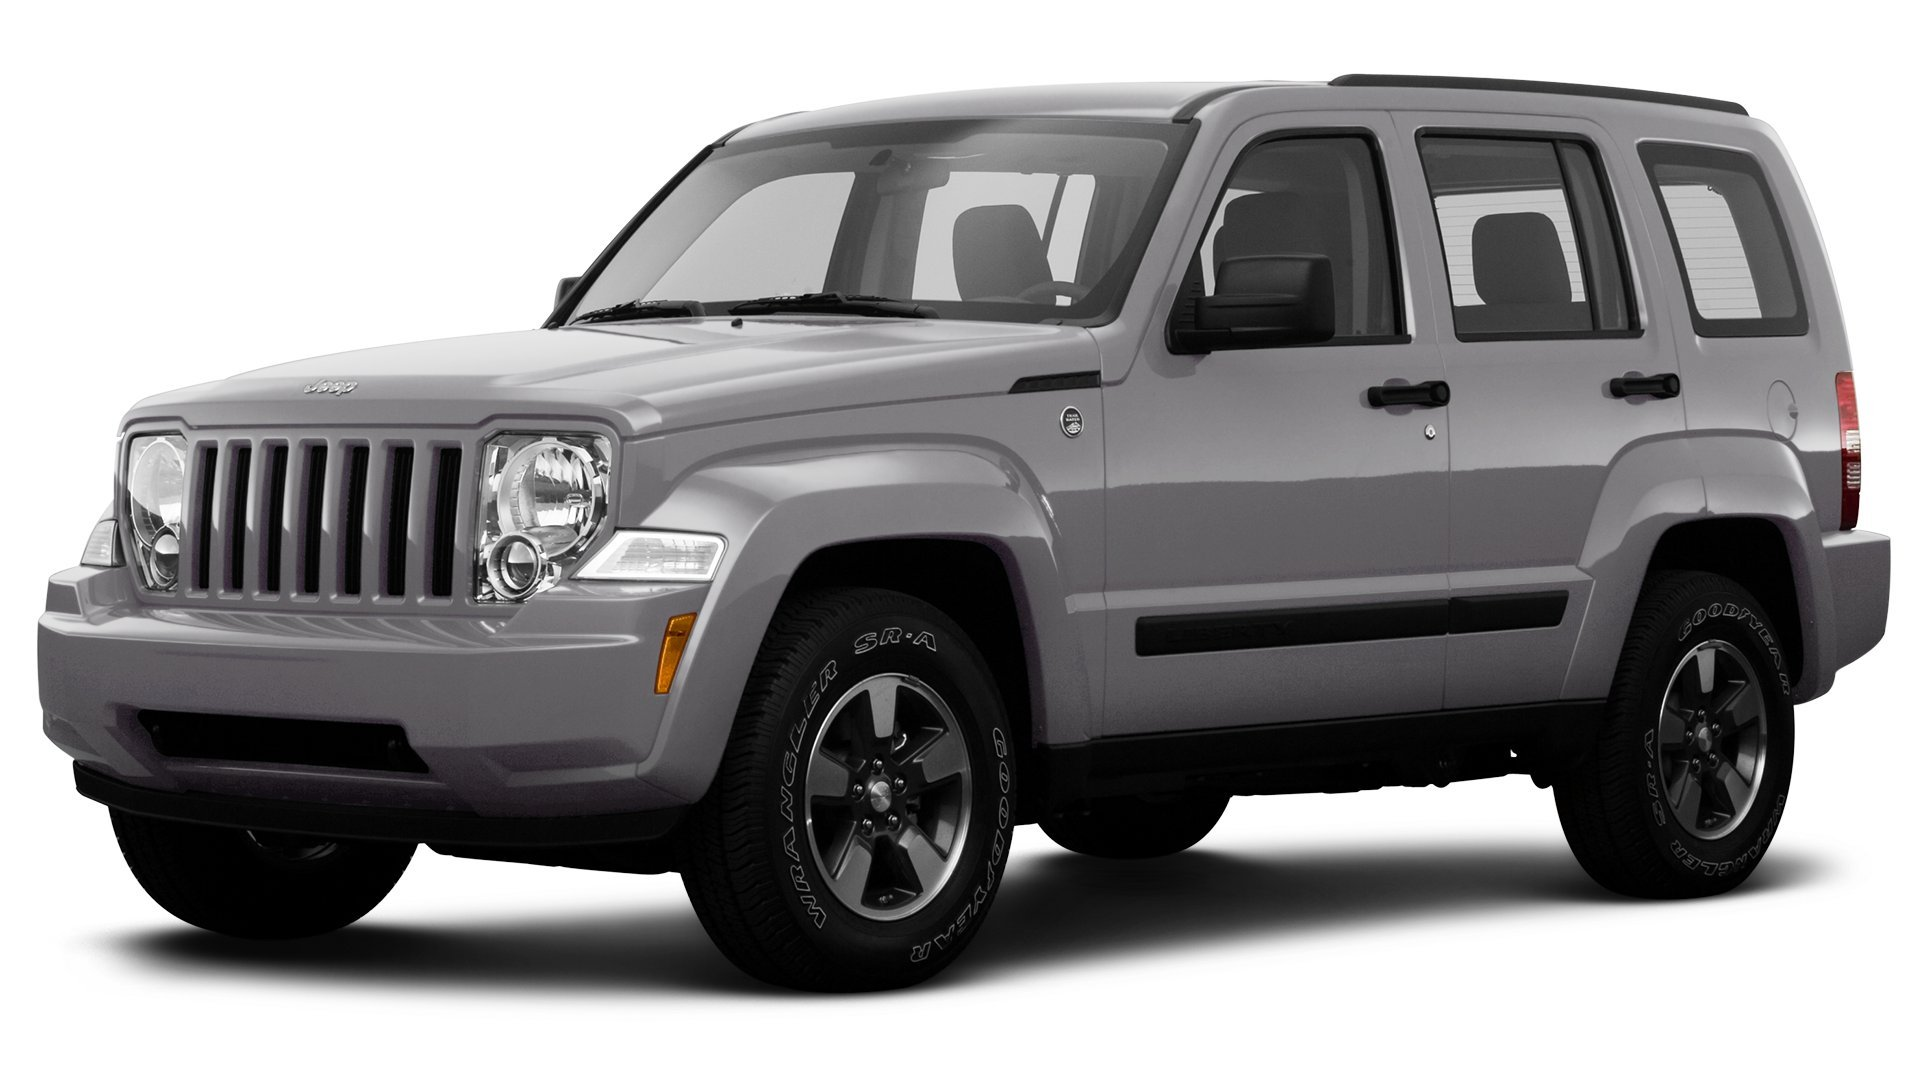 2008 jeep compass reviews images and specs. Black Bedroom Furniture Sets. Home Design Ideas